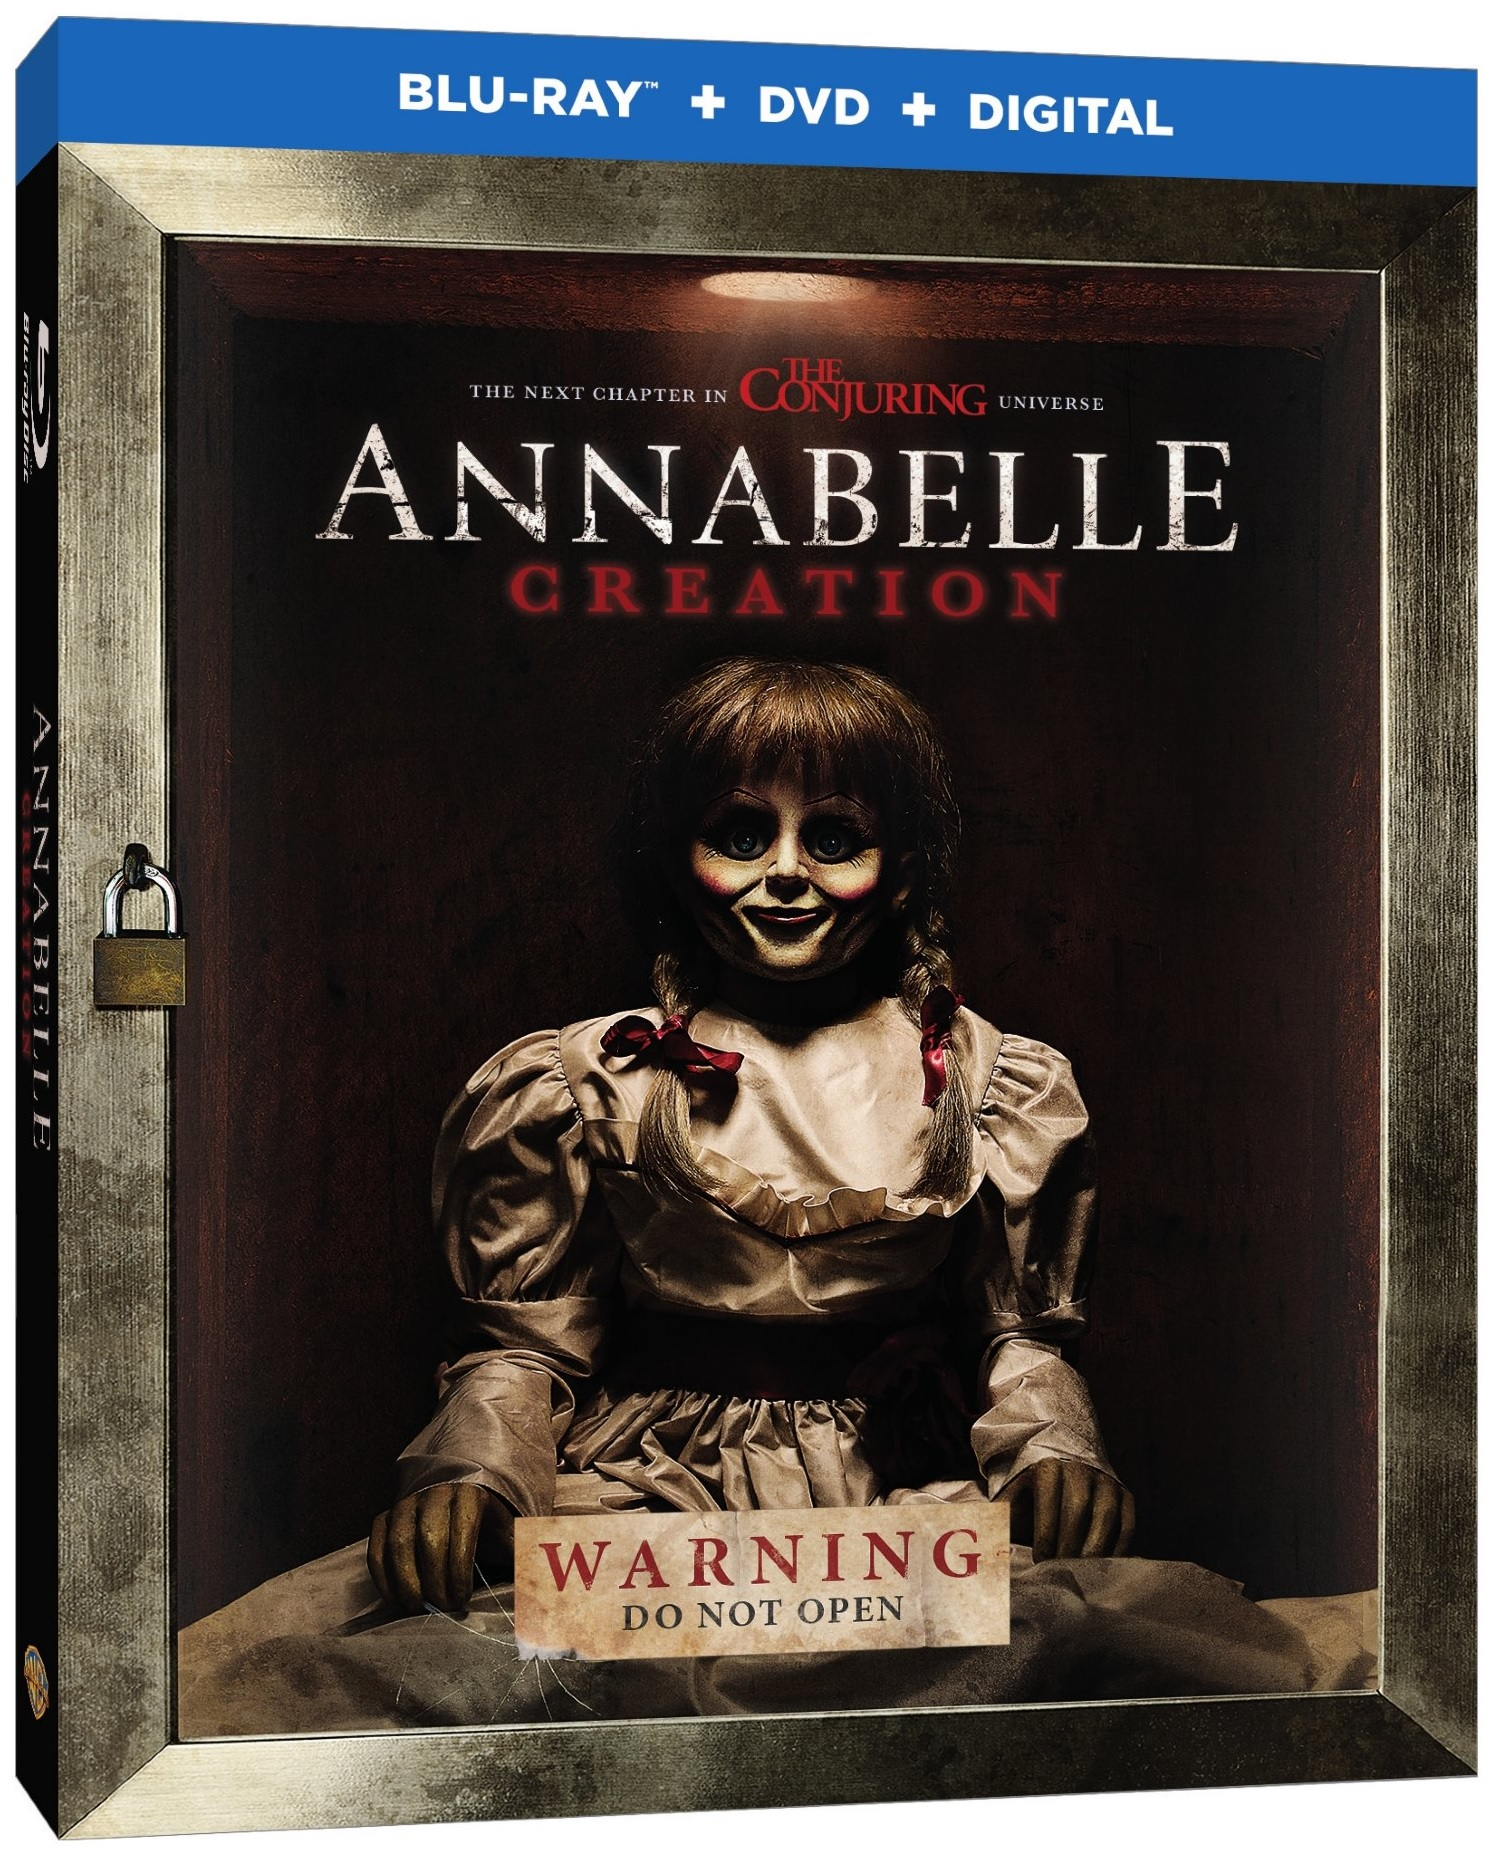 Annabelle Creation Blu-ray Review